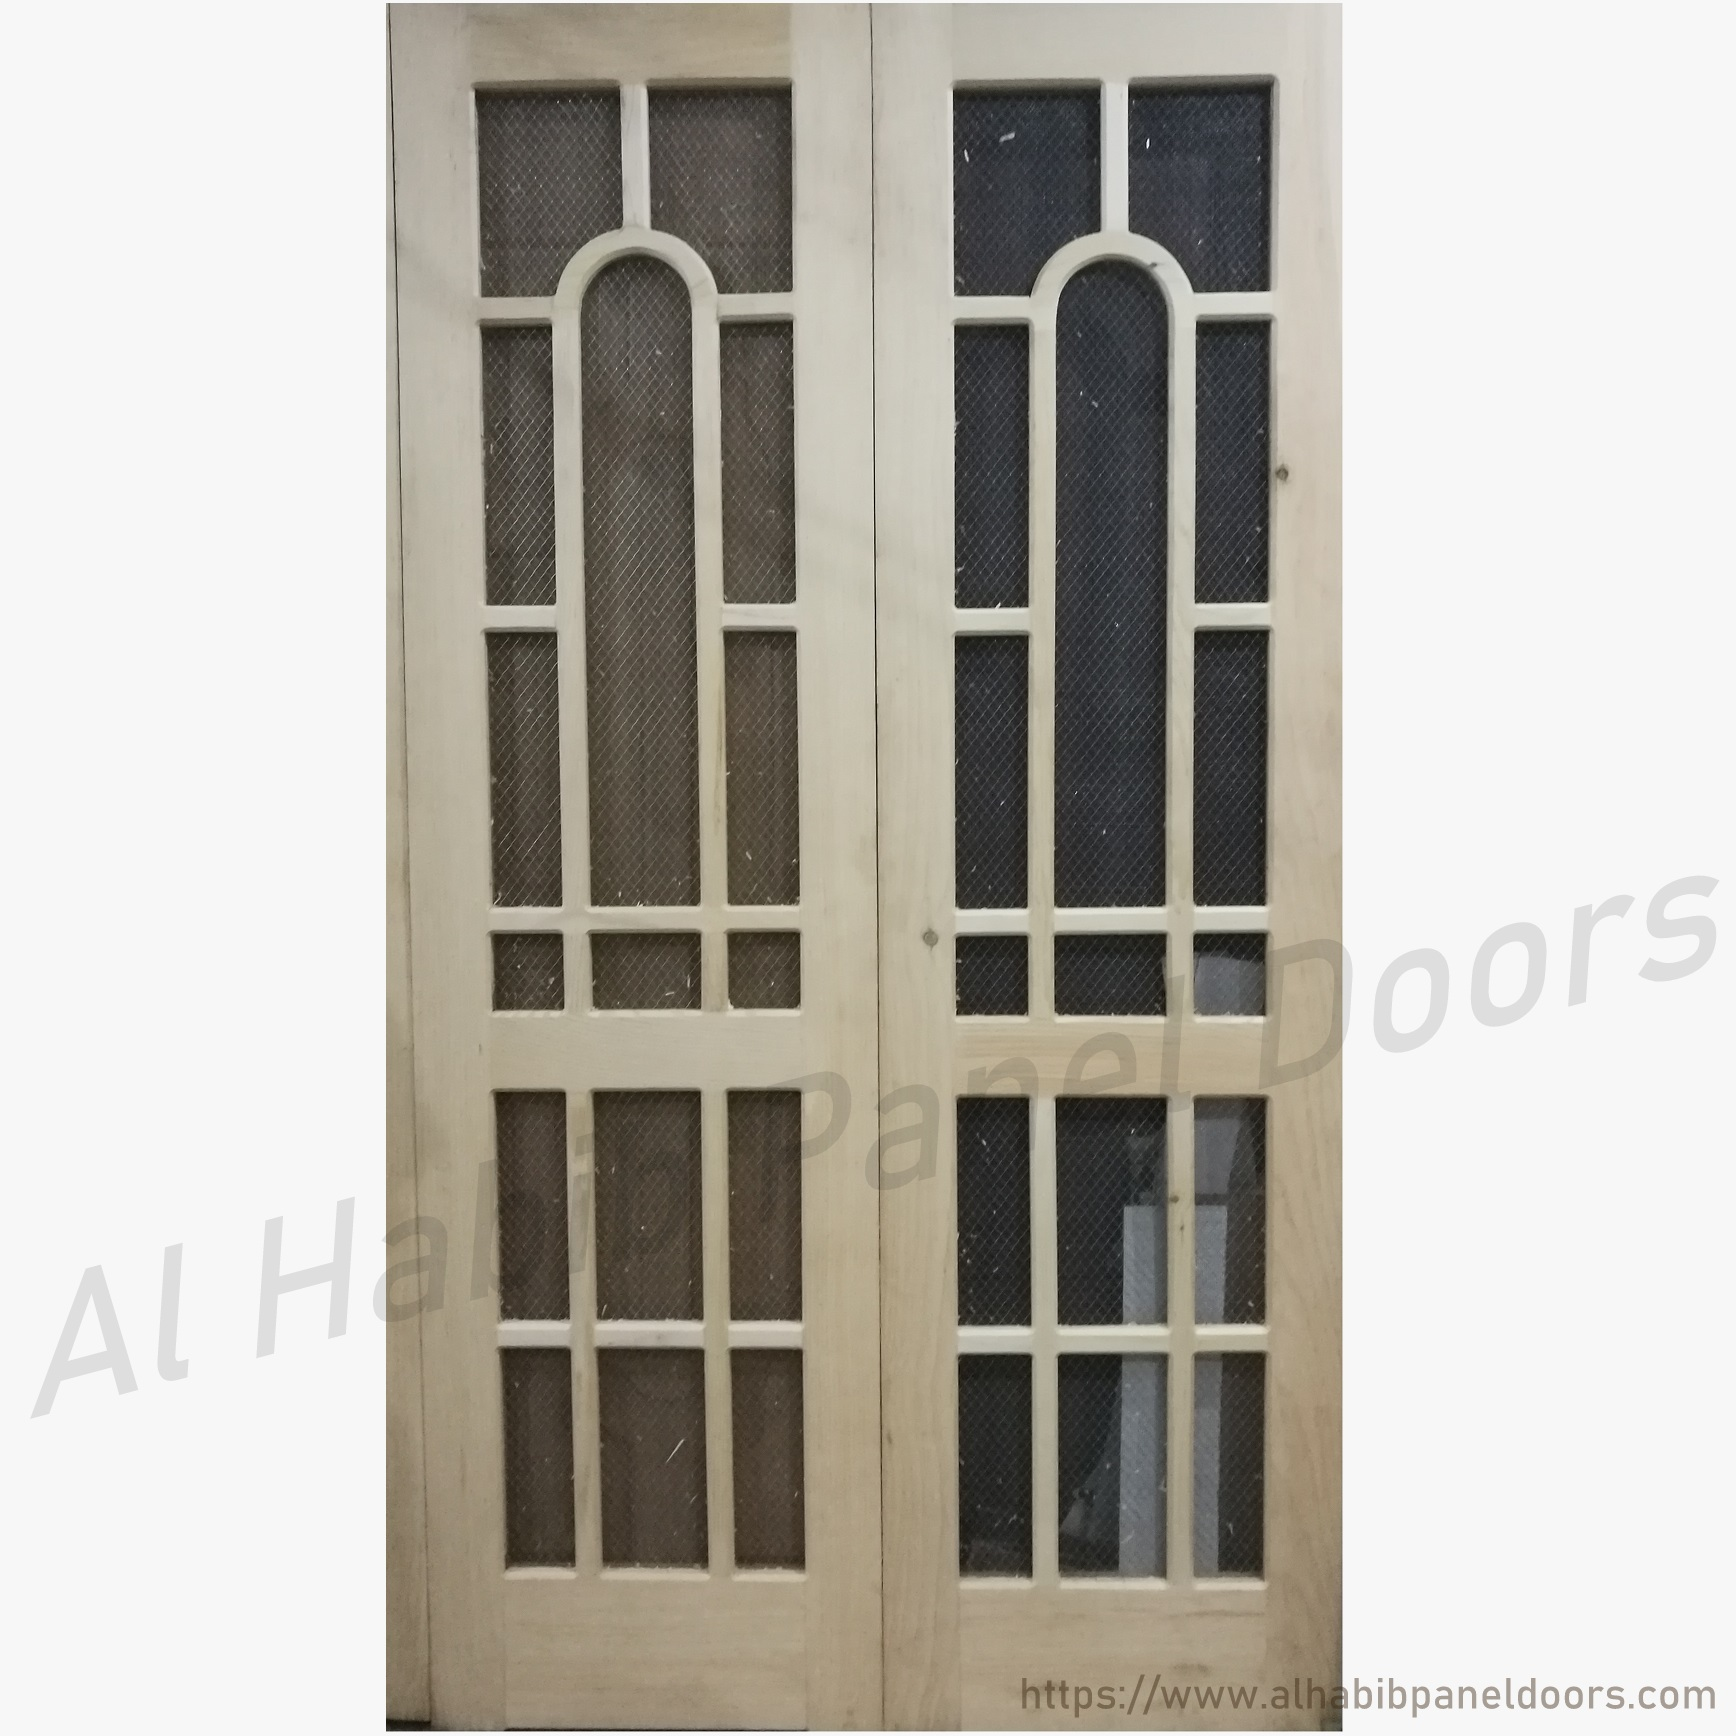 Pakistani kail wire mesh double door hpd513 mesh panel for Kail wood doors designs